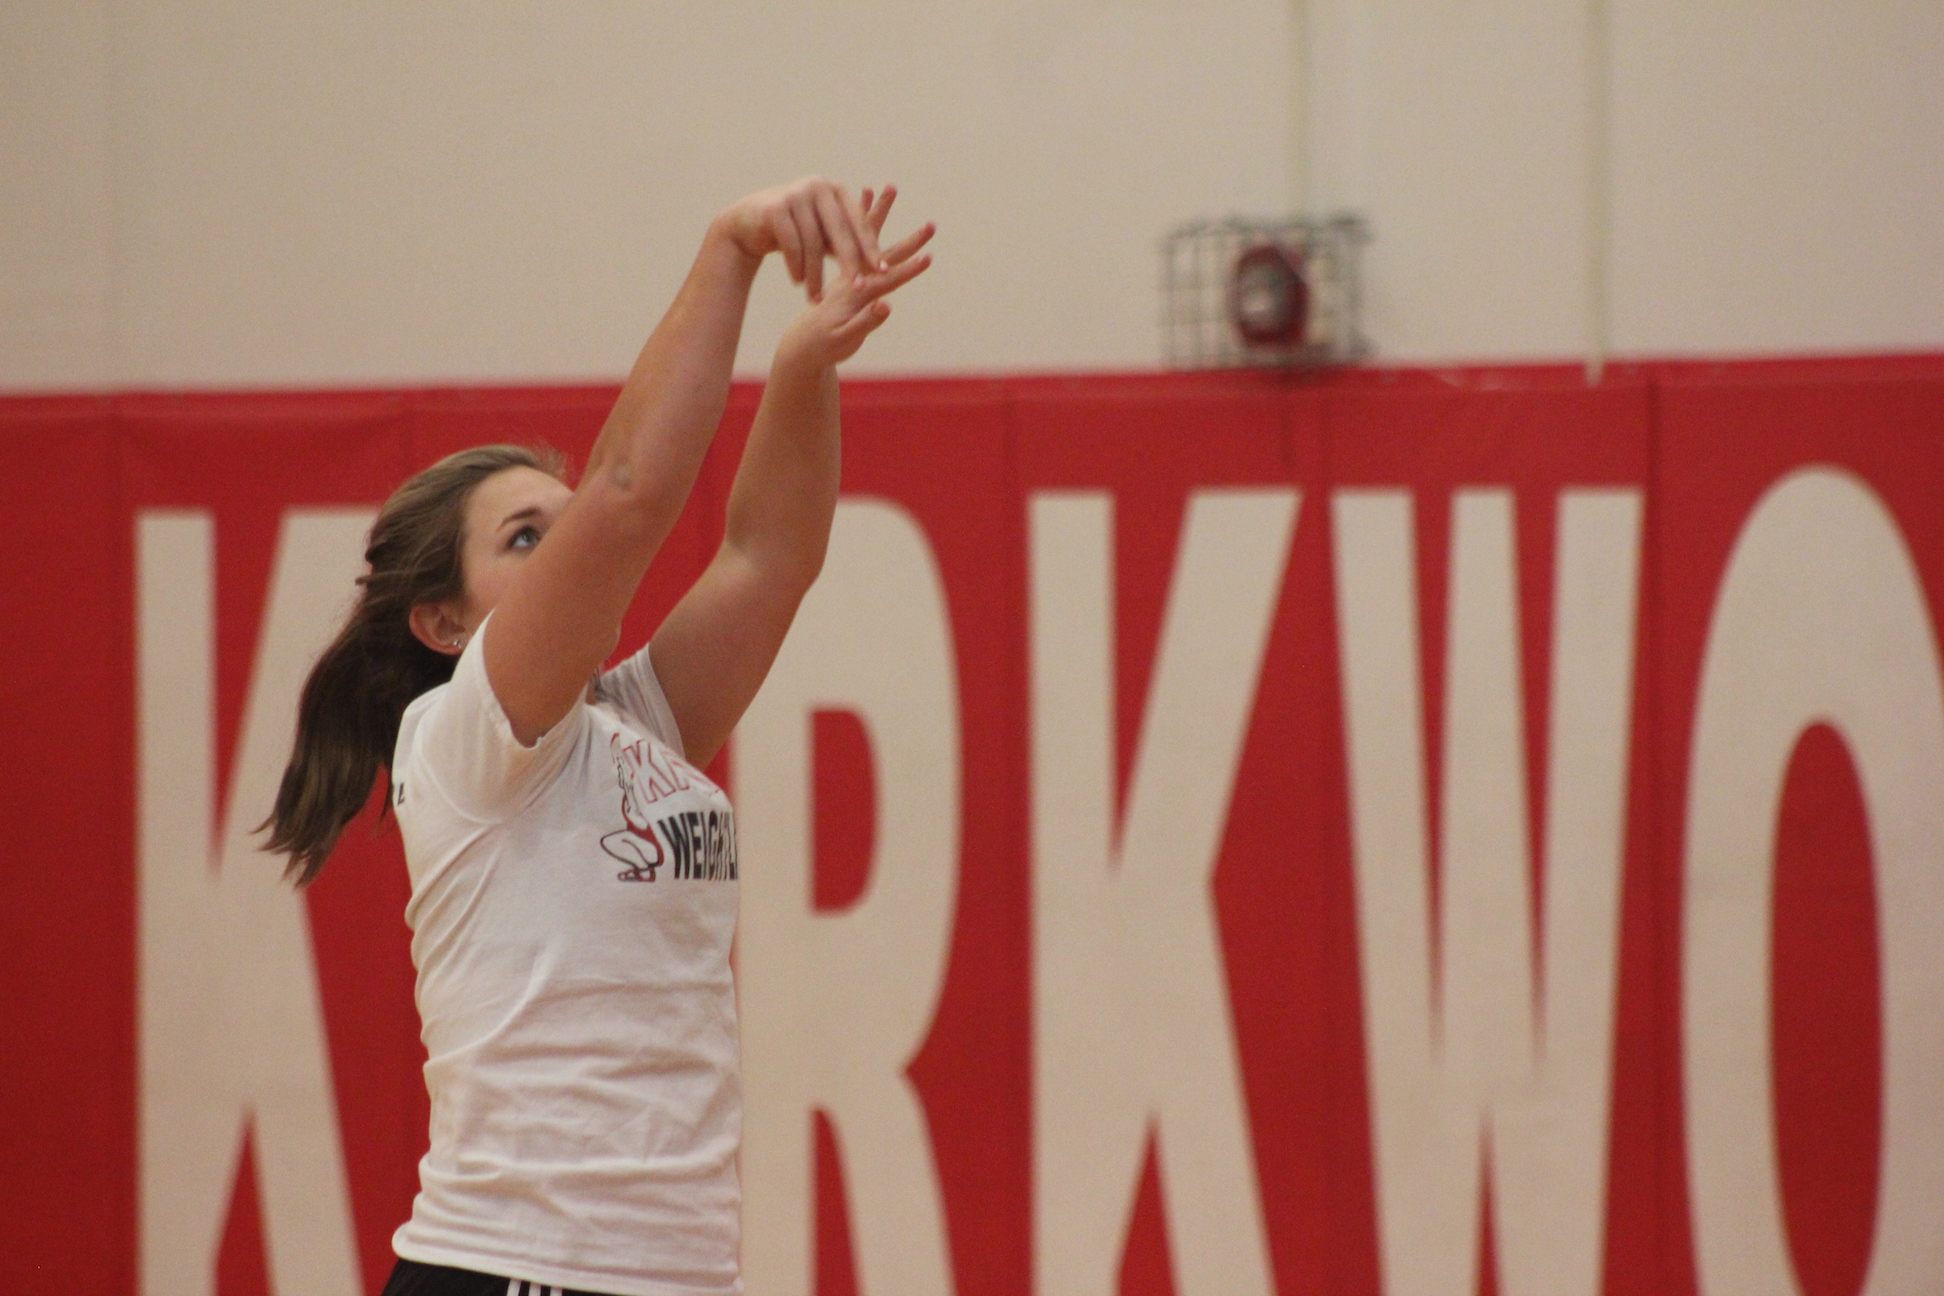 Brooke+Riggles%2C+sophomore%2C+watches+her+shot+make+it+into+the+net+during+JV+girls+basketball+practice.